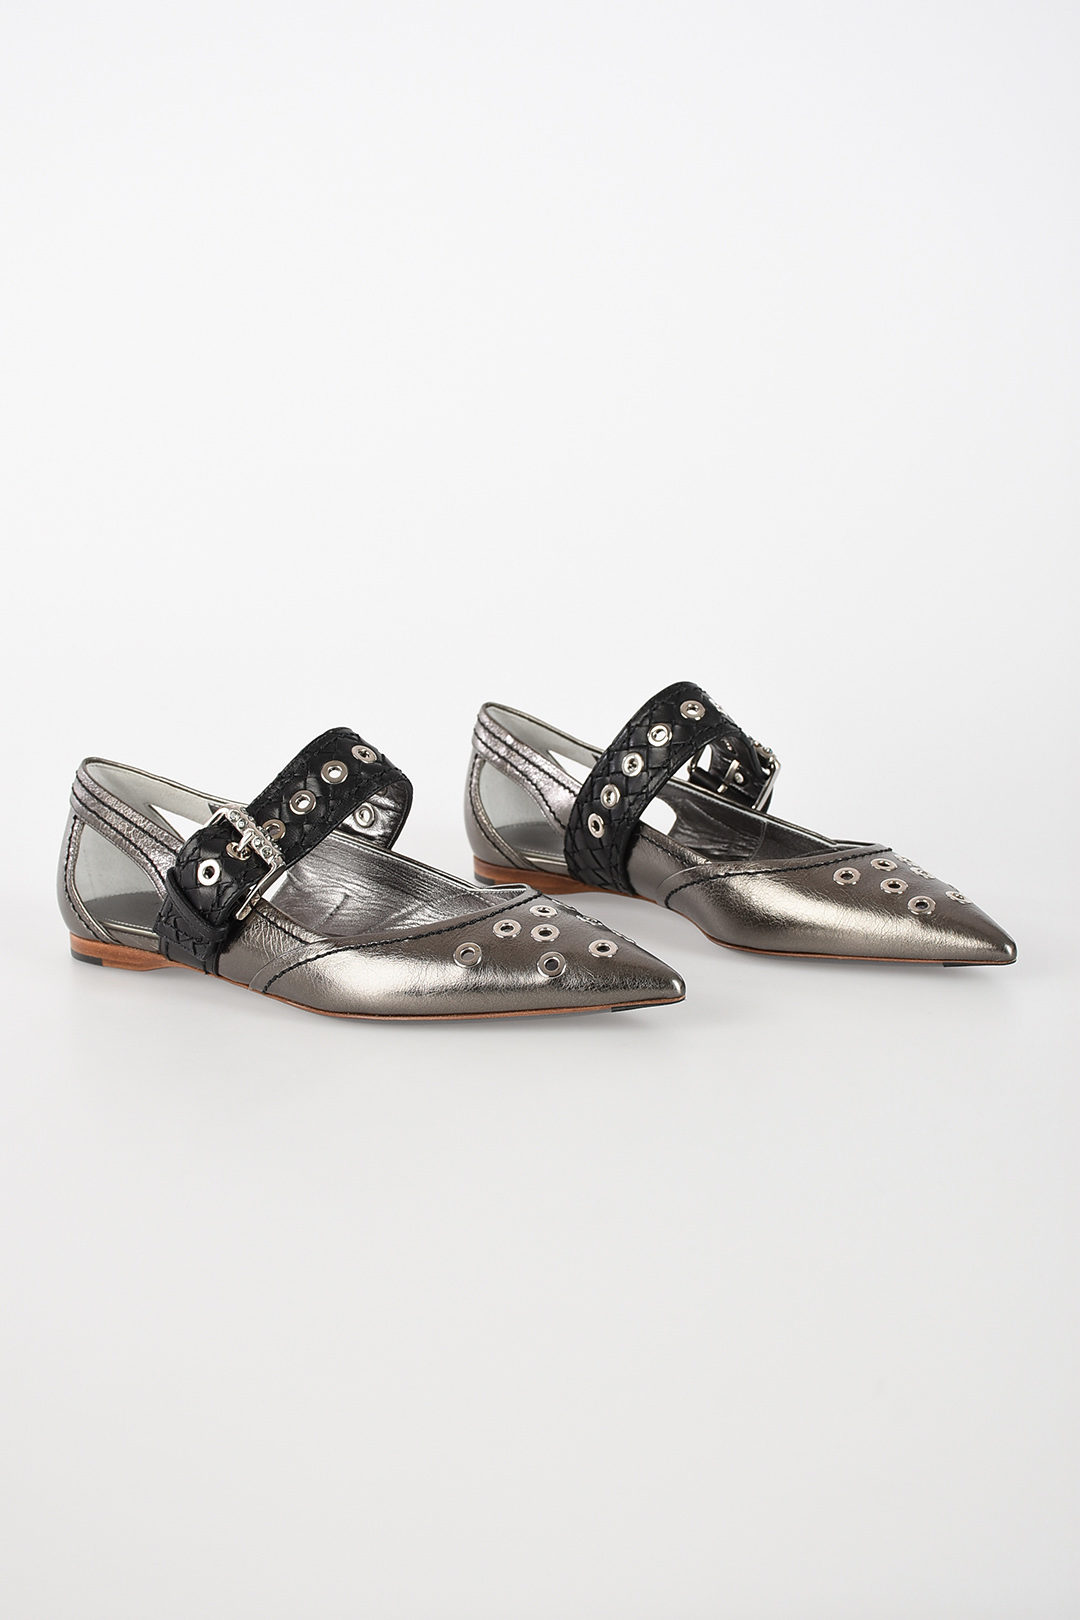 8e65c6c4 Studded Leather Ballet Flats